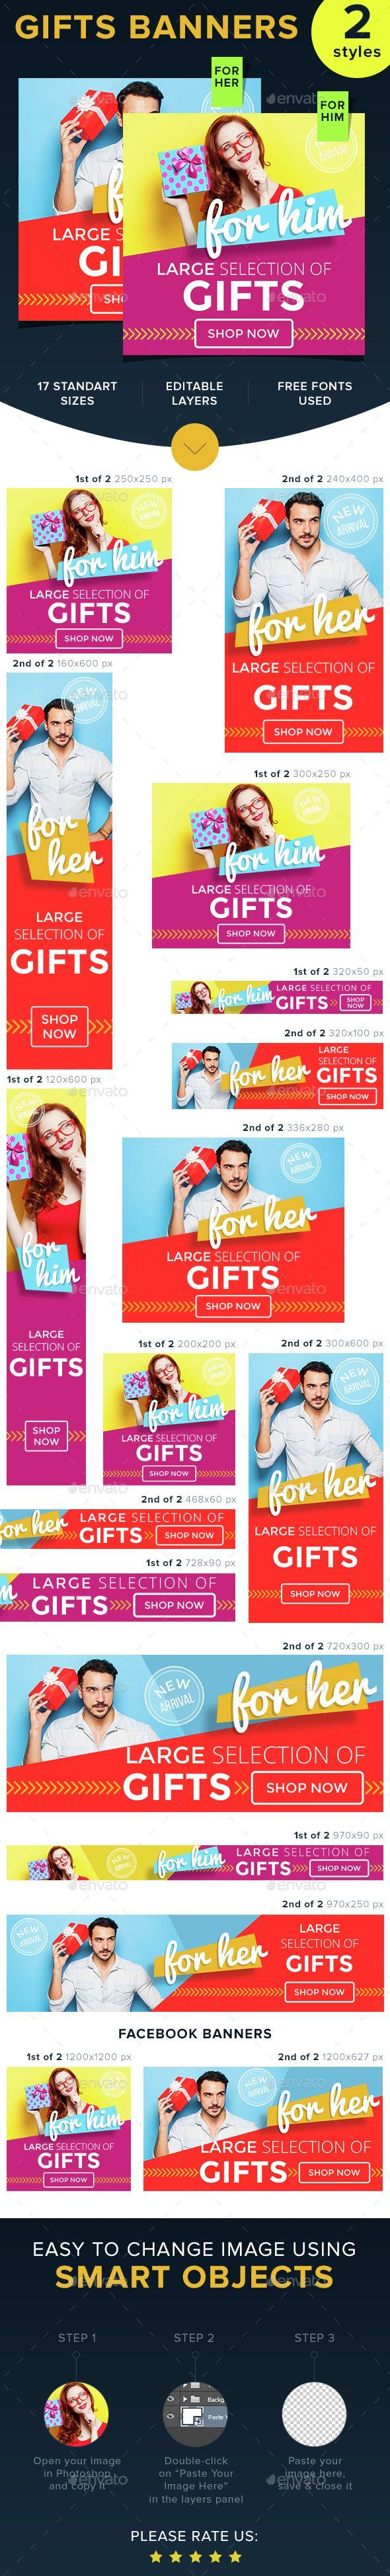 Web banners - Gifts for Her & Him. My new work:)